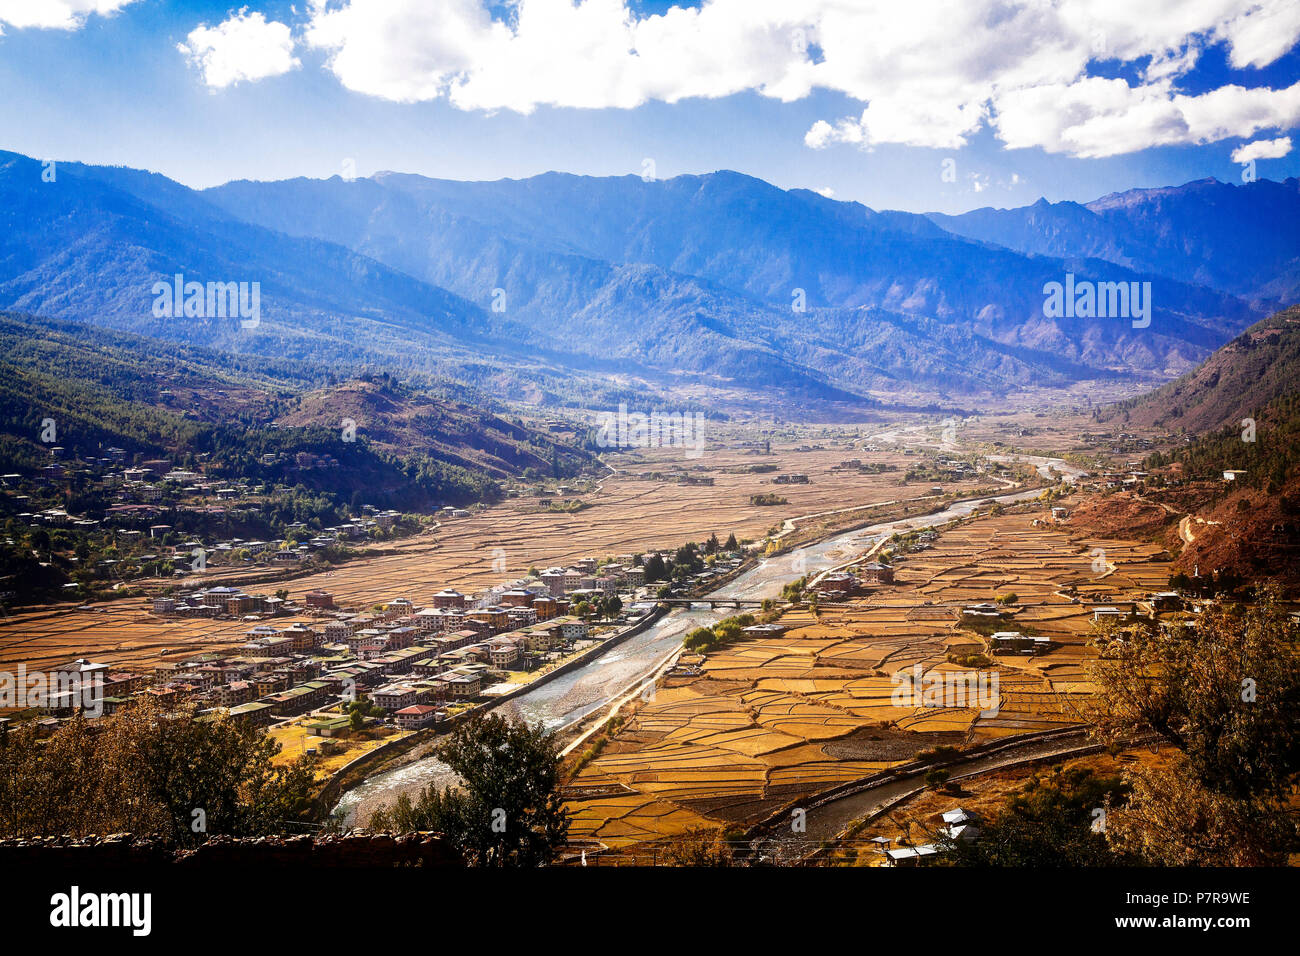 The city of Paro and the Paro Valley in western Bhutan. - Stock Image